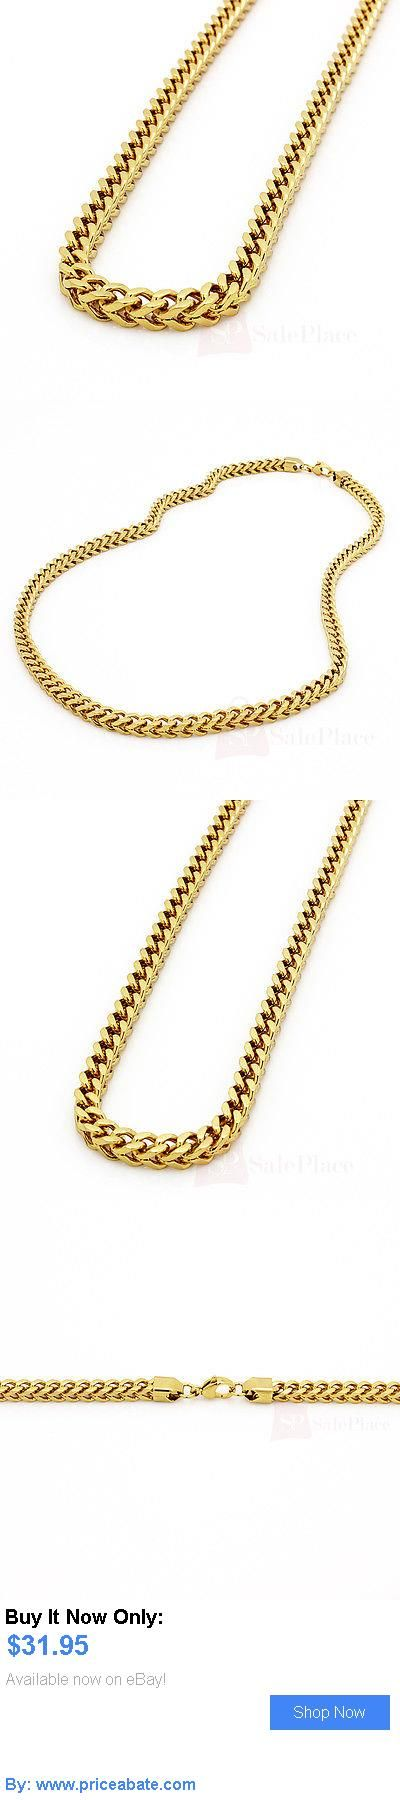 chain mens foxtail gold necklace men chains long jewelry clipart rose width length smartness